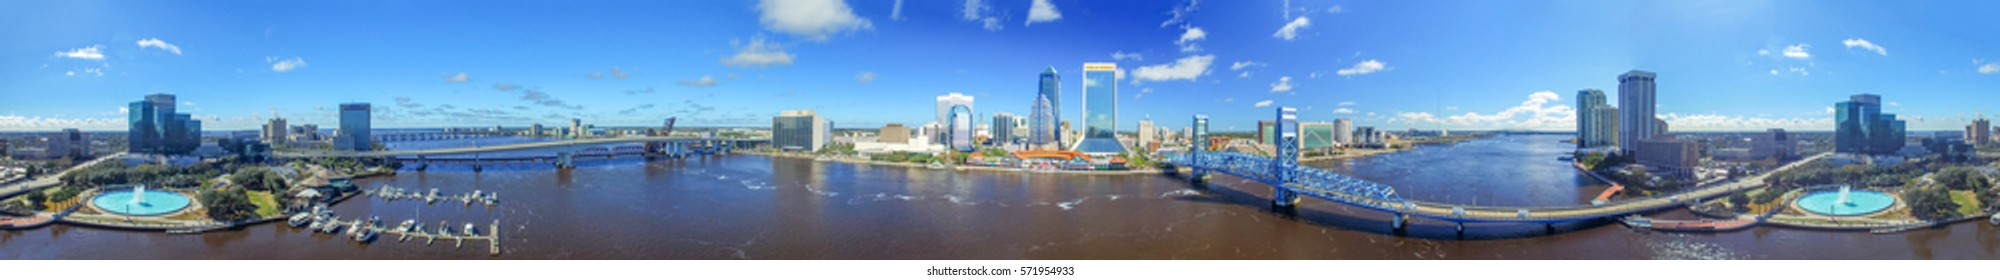 JACKSONVILLE, FL - FEBRUARY 15, 2016: Aerial panoramic view of city skyline. Jacksonville is a famous tourist destination in Florida